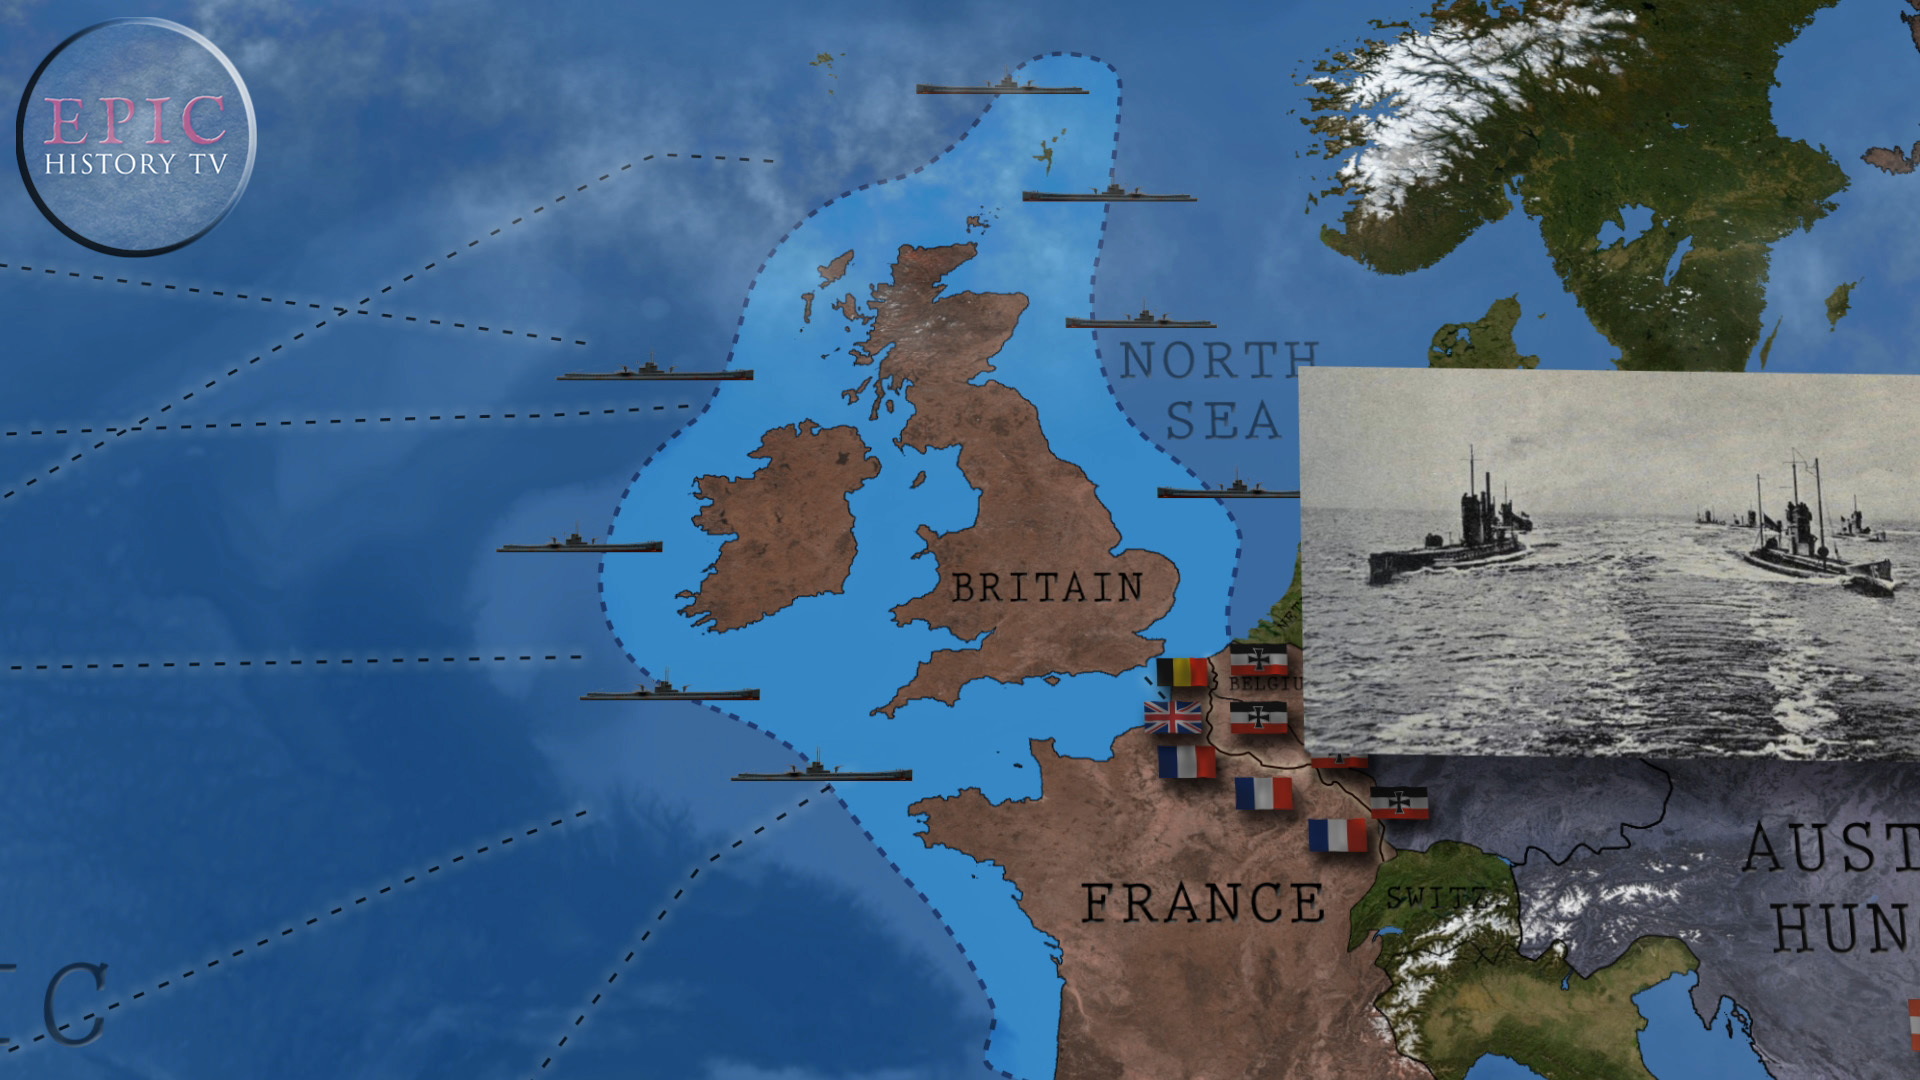 In February 1915 Germany announced a U-boat blockade of Britain, in retaliation for the British naval blockade of Germany. German submarines would attack Allied ships in British coastal waters without warning (it had been customary, before World War One,to give warning before attacking a merchant ship to allow the crew to escape), and also warned that neutral shipping would be at risk since clear identification of a ship's nationality was difficult, not least because Allied shipping often flew neutral colours to evade attack (another customary practice of war at sea). Ultimately, although the U-boats sank large numbers of Allied merchant ships and came dangerously close to starving Britain into surrender,the strategy backfired because it hastened American entry into the war.  WATCH THE VIDEO